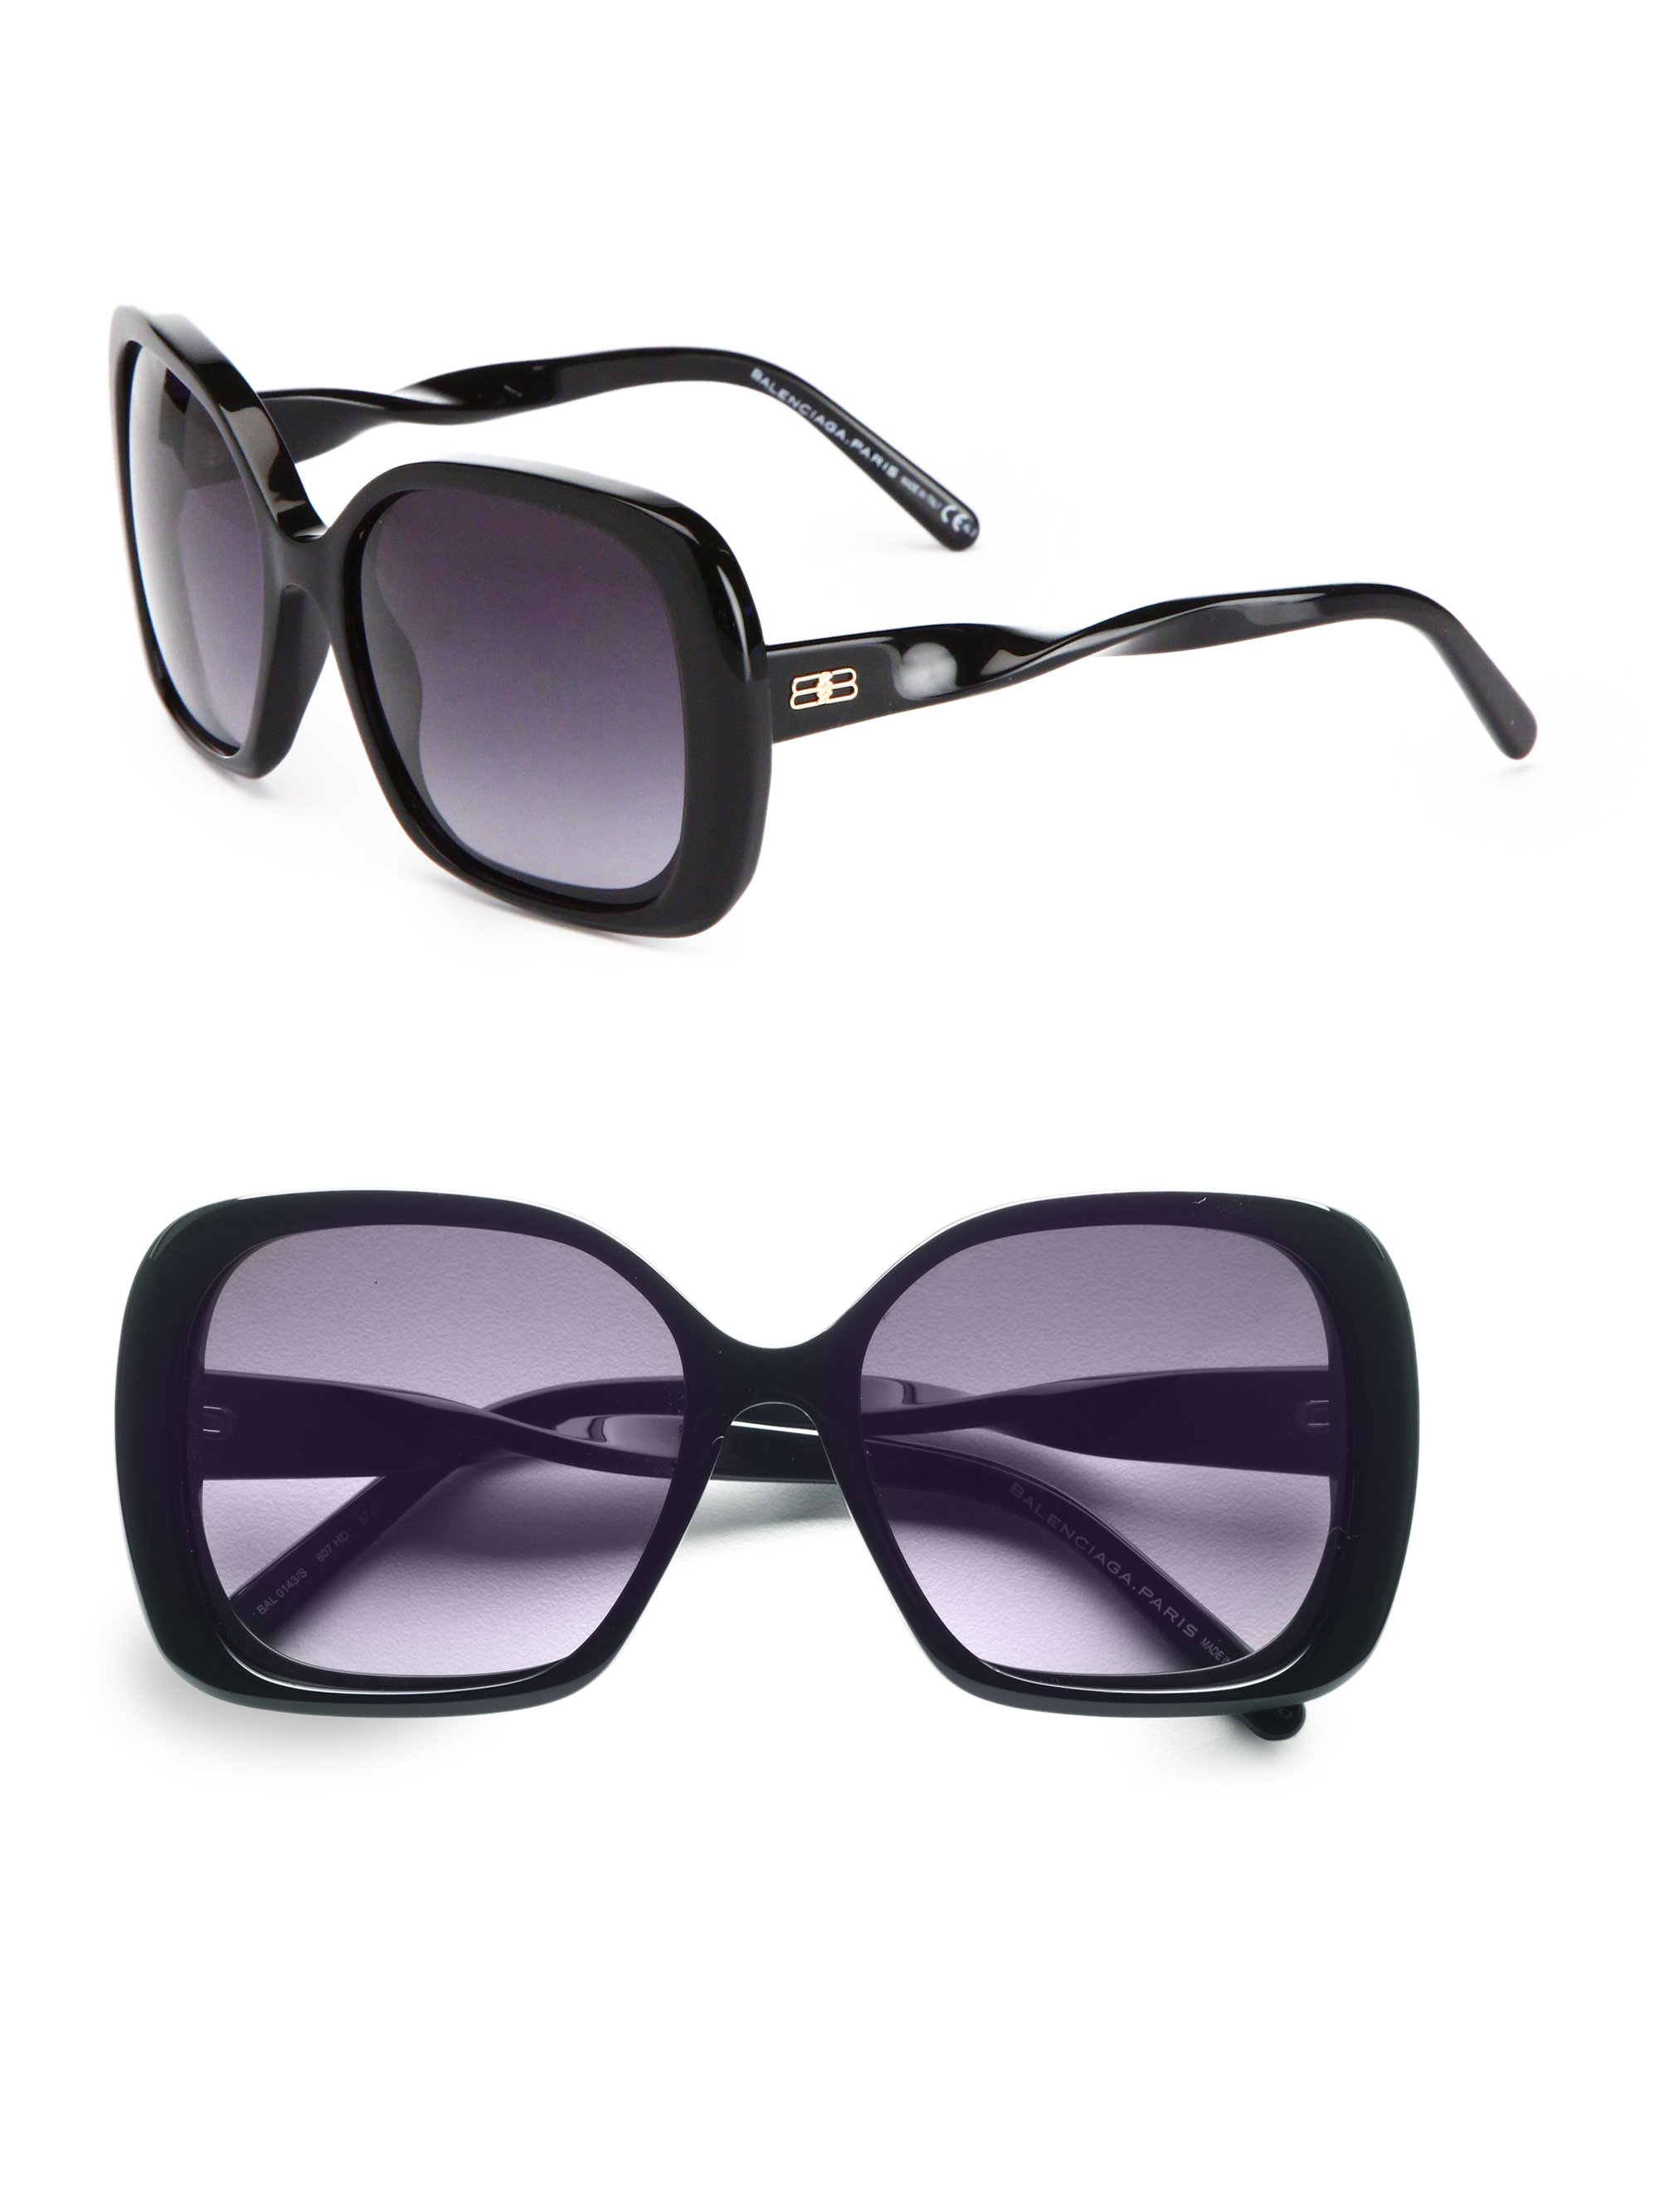 d93b310aa34c Balenciaga Square Twisted Temple Sunglasses in Black - Lyst